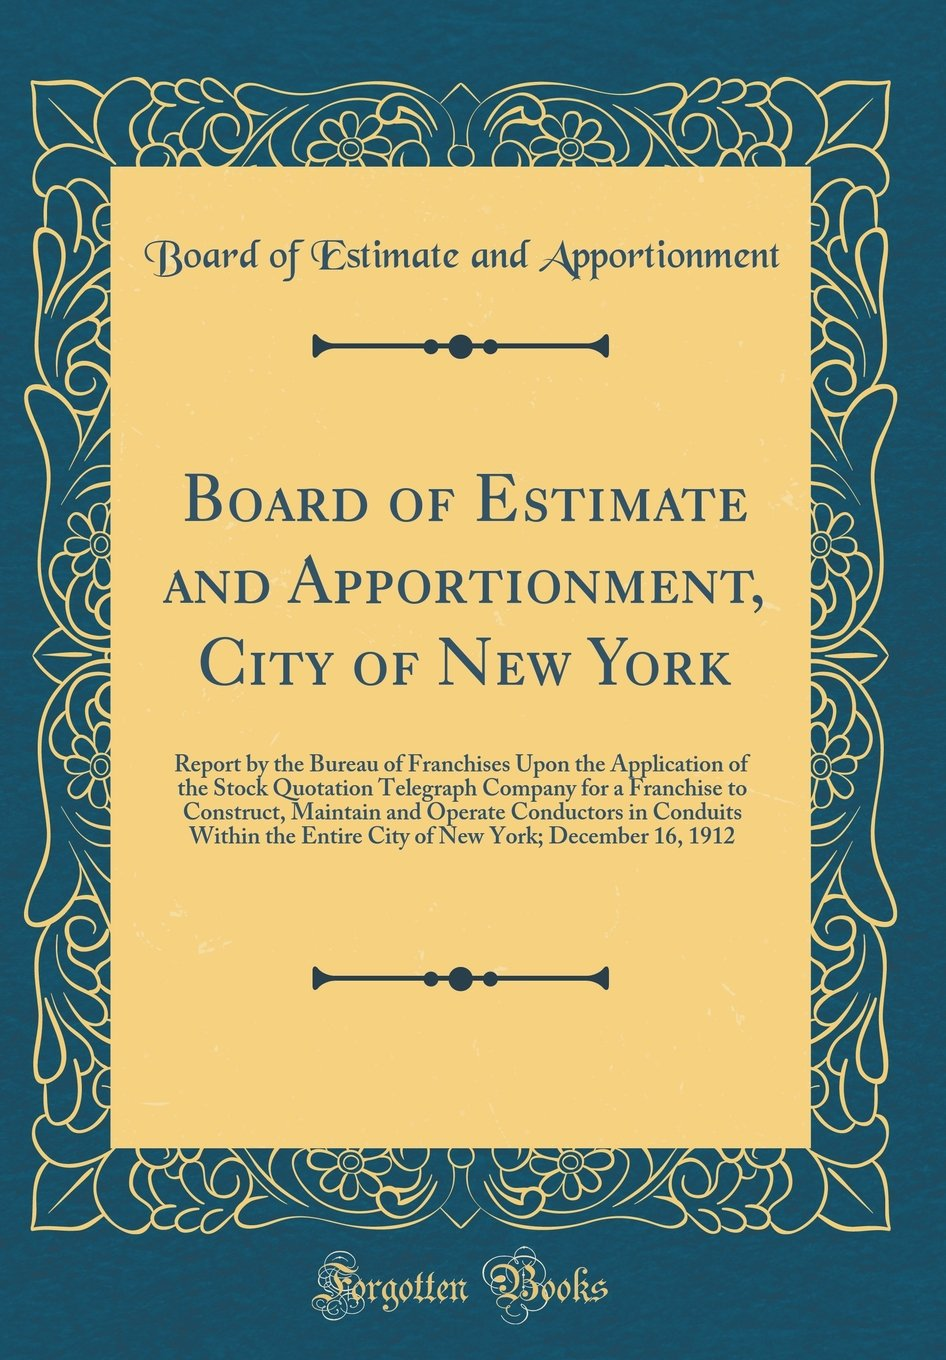 Read Online Board of Estimate and Apportionment, City of New York: Report by the Bureau of Franchises Upon the Application of the Stock Quotation Telegraph ... in Conduits Within the Entire City of New ebook